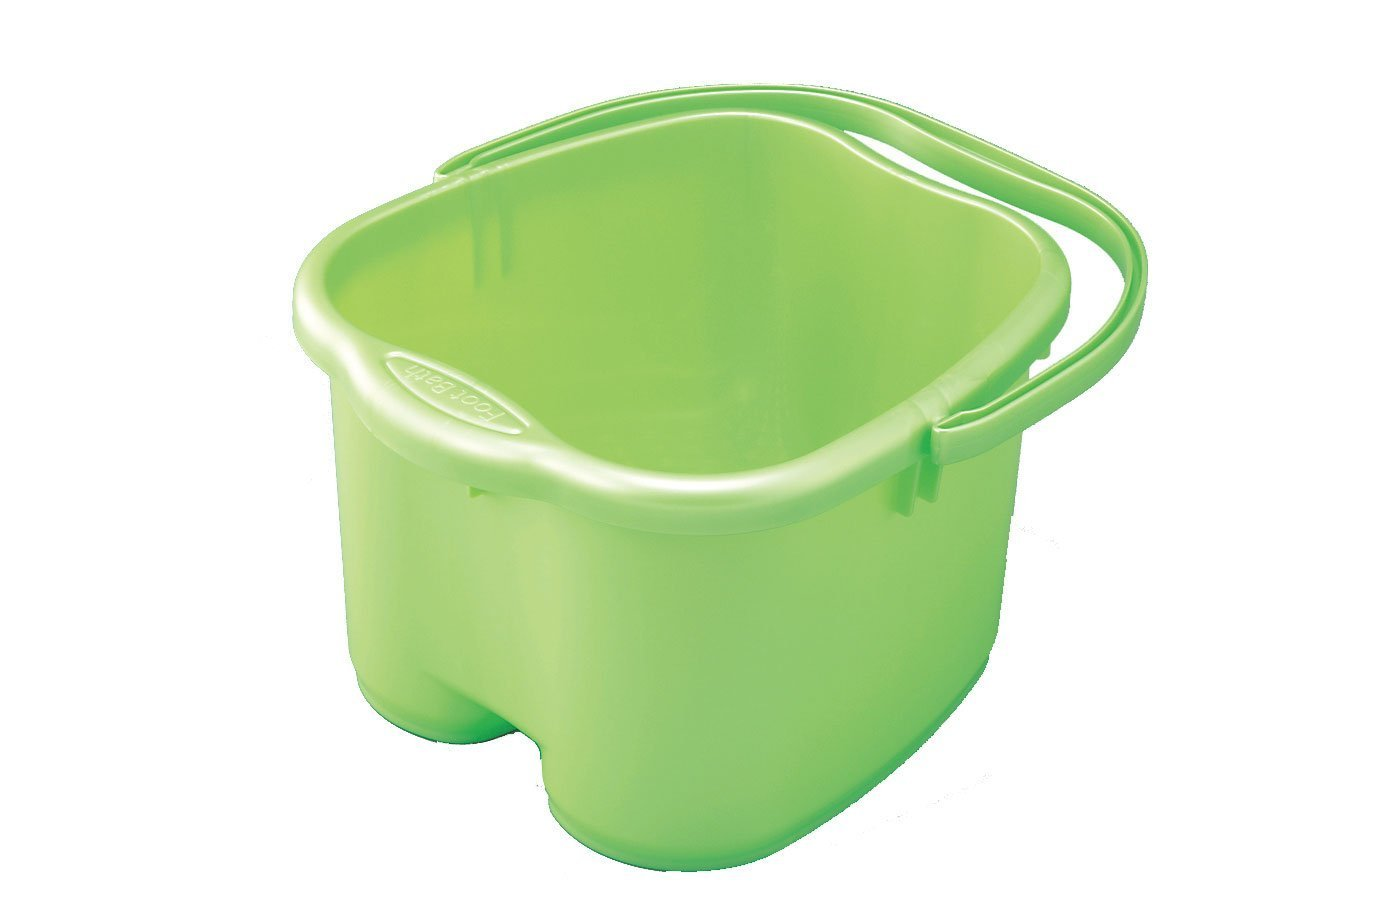 Inomata Green Foot Detox Massage Spa Bucket #0012 by Inomata 2617